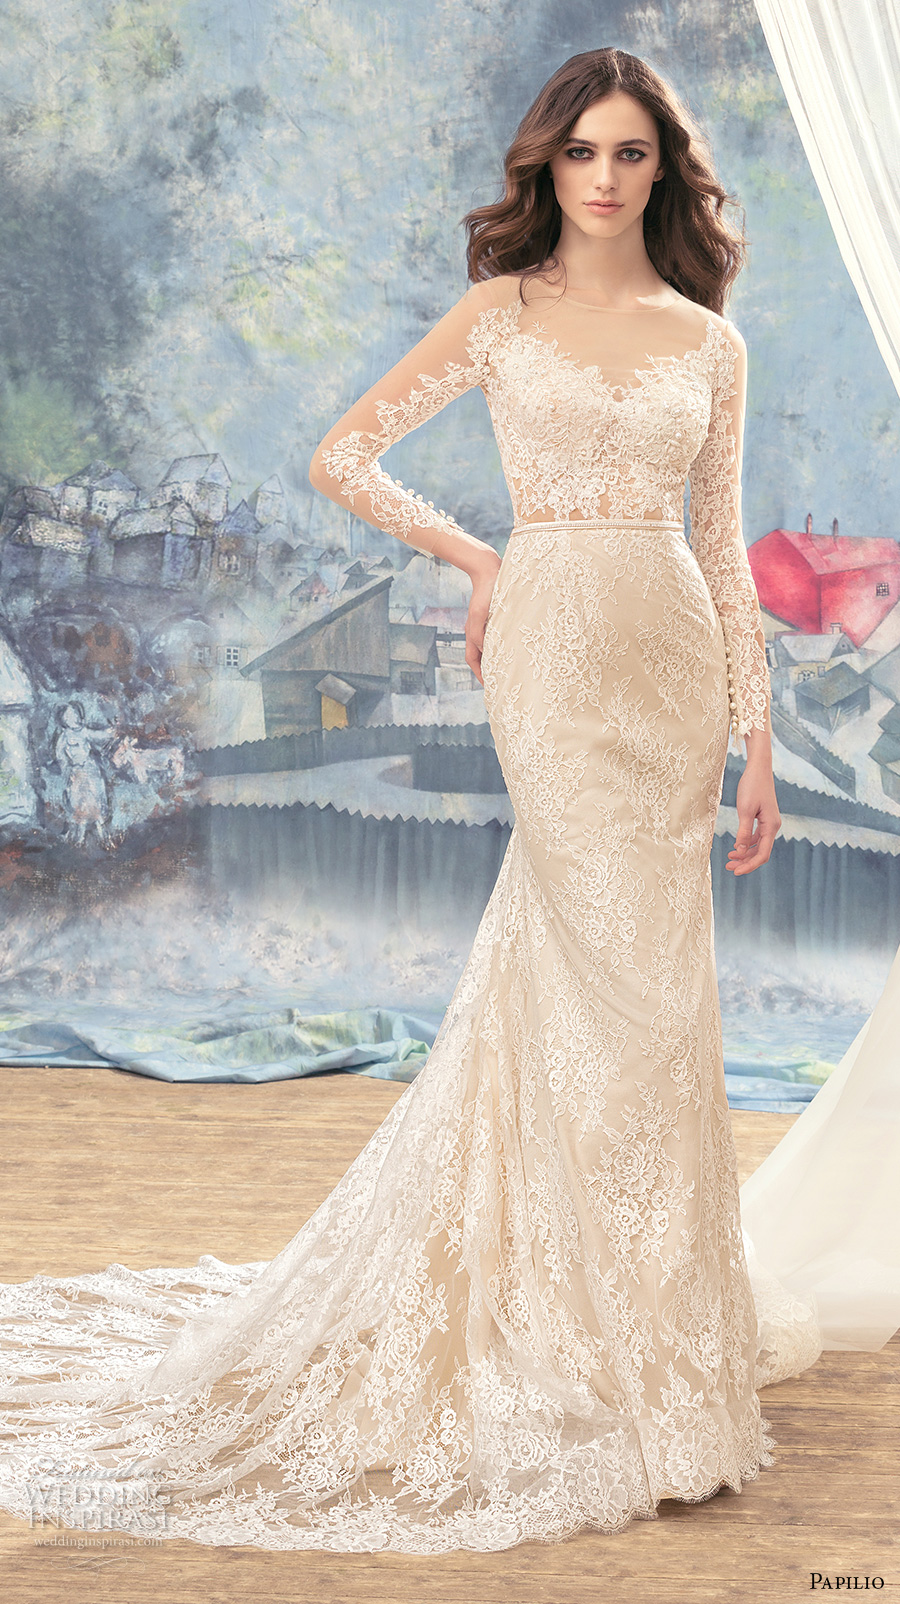 papilio 2017 bridal long sleeves illusion jewel sweetheart neckline full embellishement elegant sheath wedding dress lace back chaple train (eagle) mv